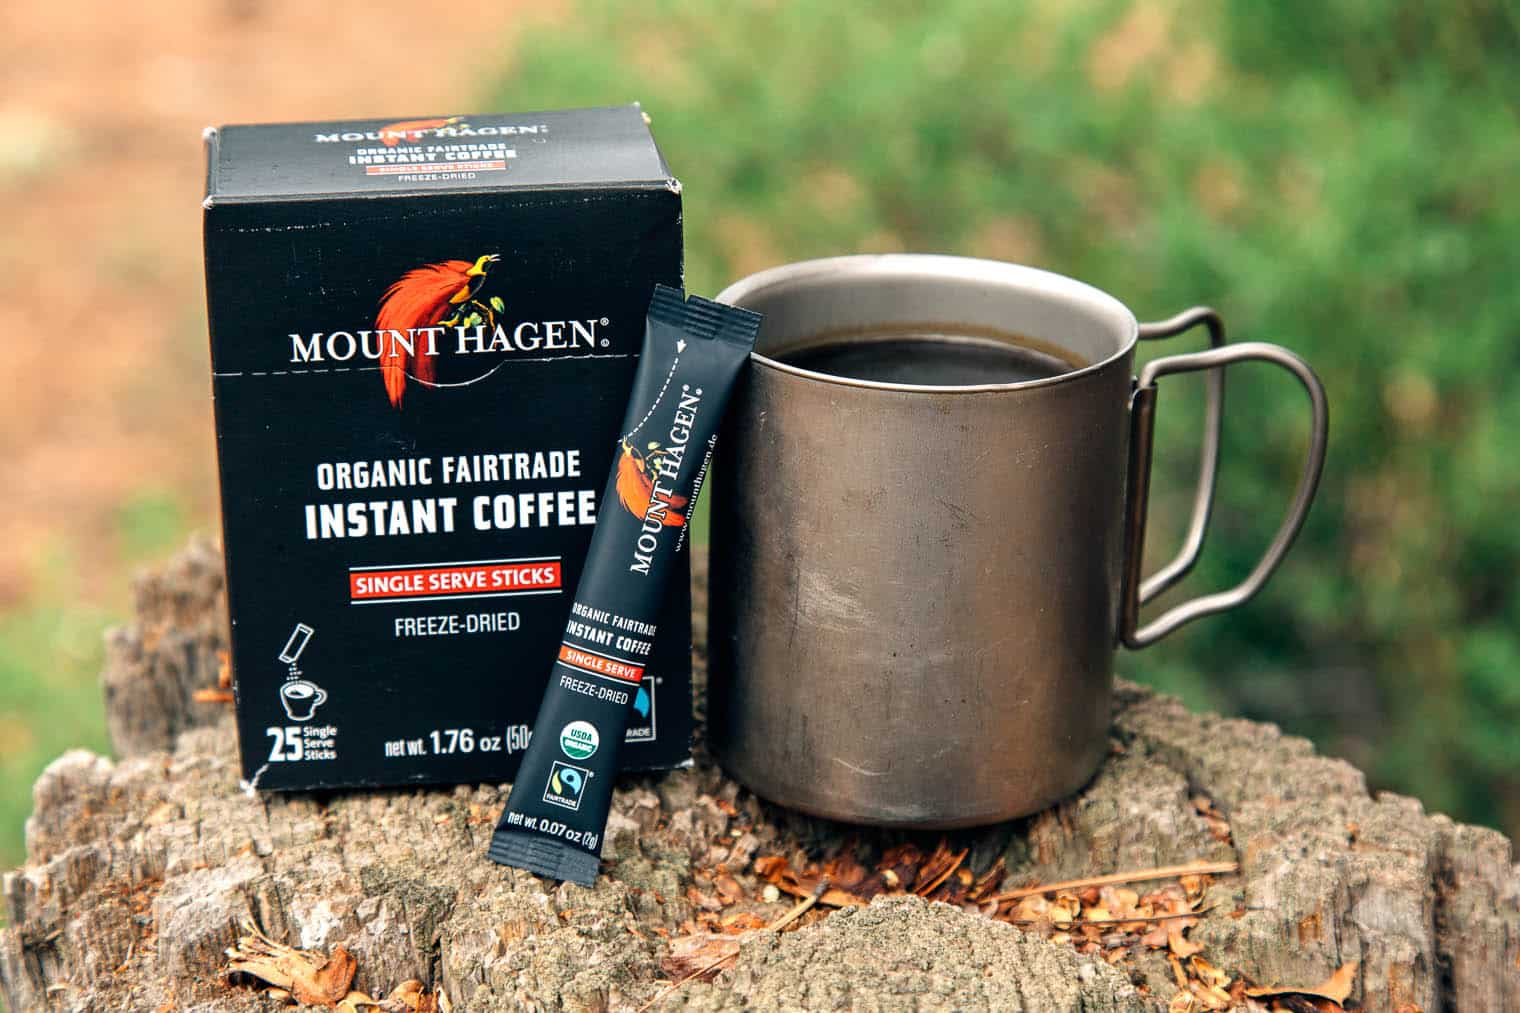 Mount Hagen Organic Instant Coffee - Instant Coffee for Backpacking